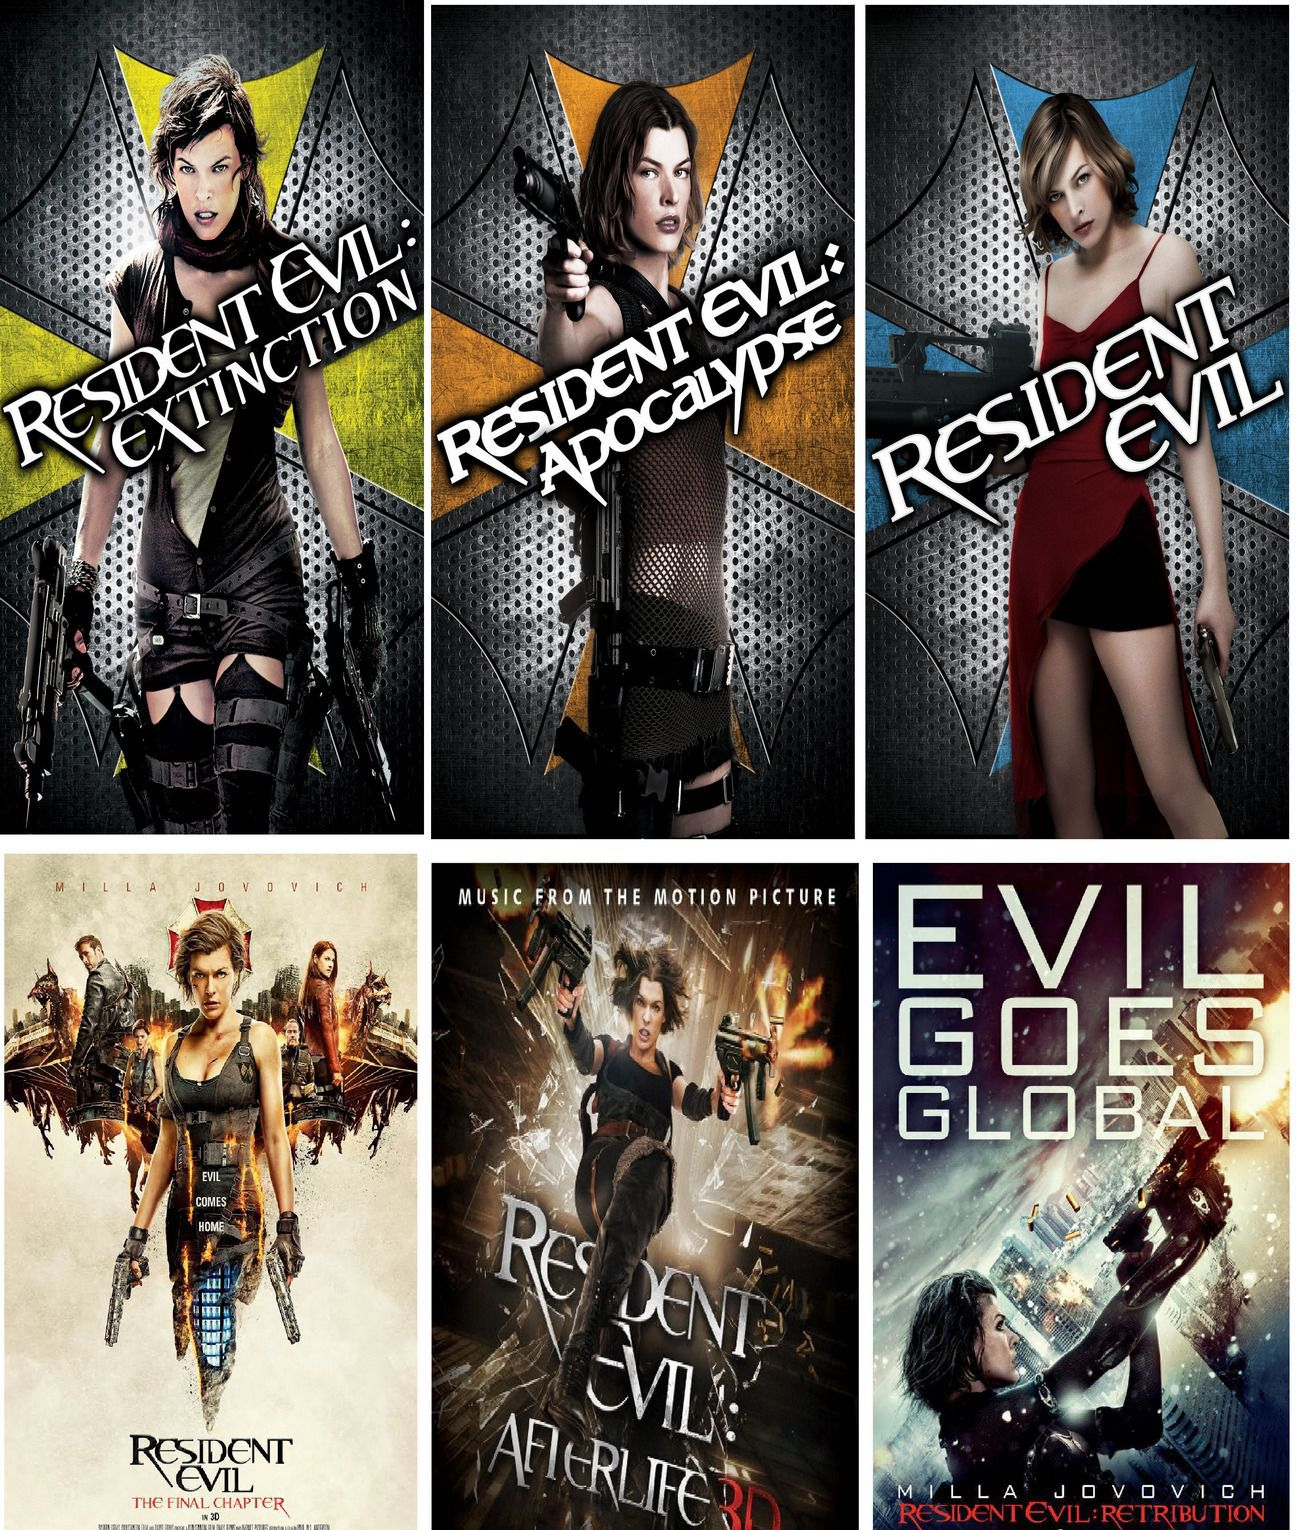 Resident Evil All 6 Parts Full Movies In Hindi Dvd Hindi